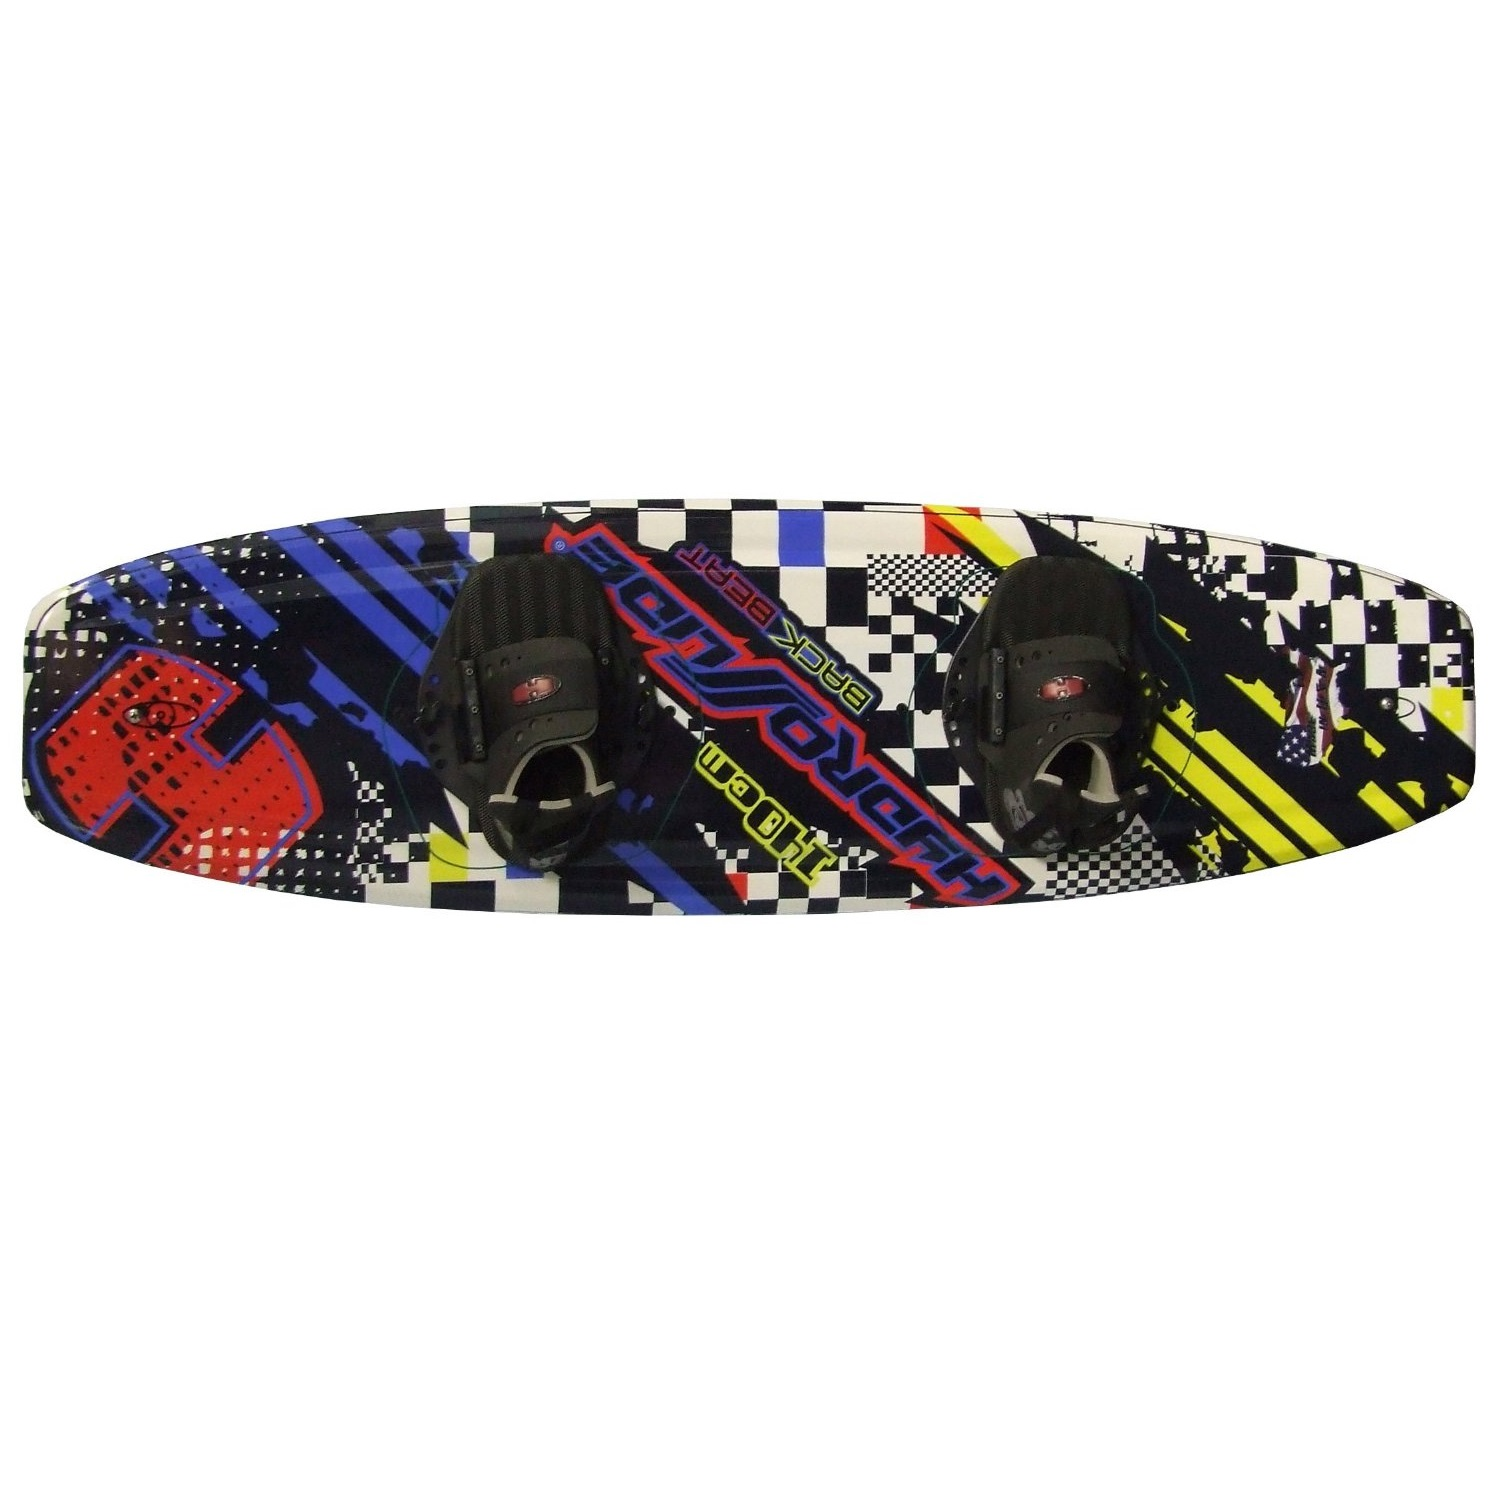 Hydroslide Back Beat Wakeboard with Grabber Bindings by HydroSlide